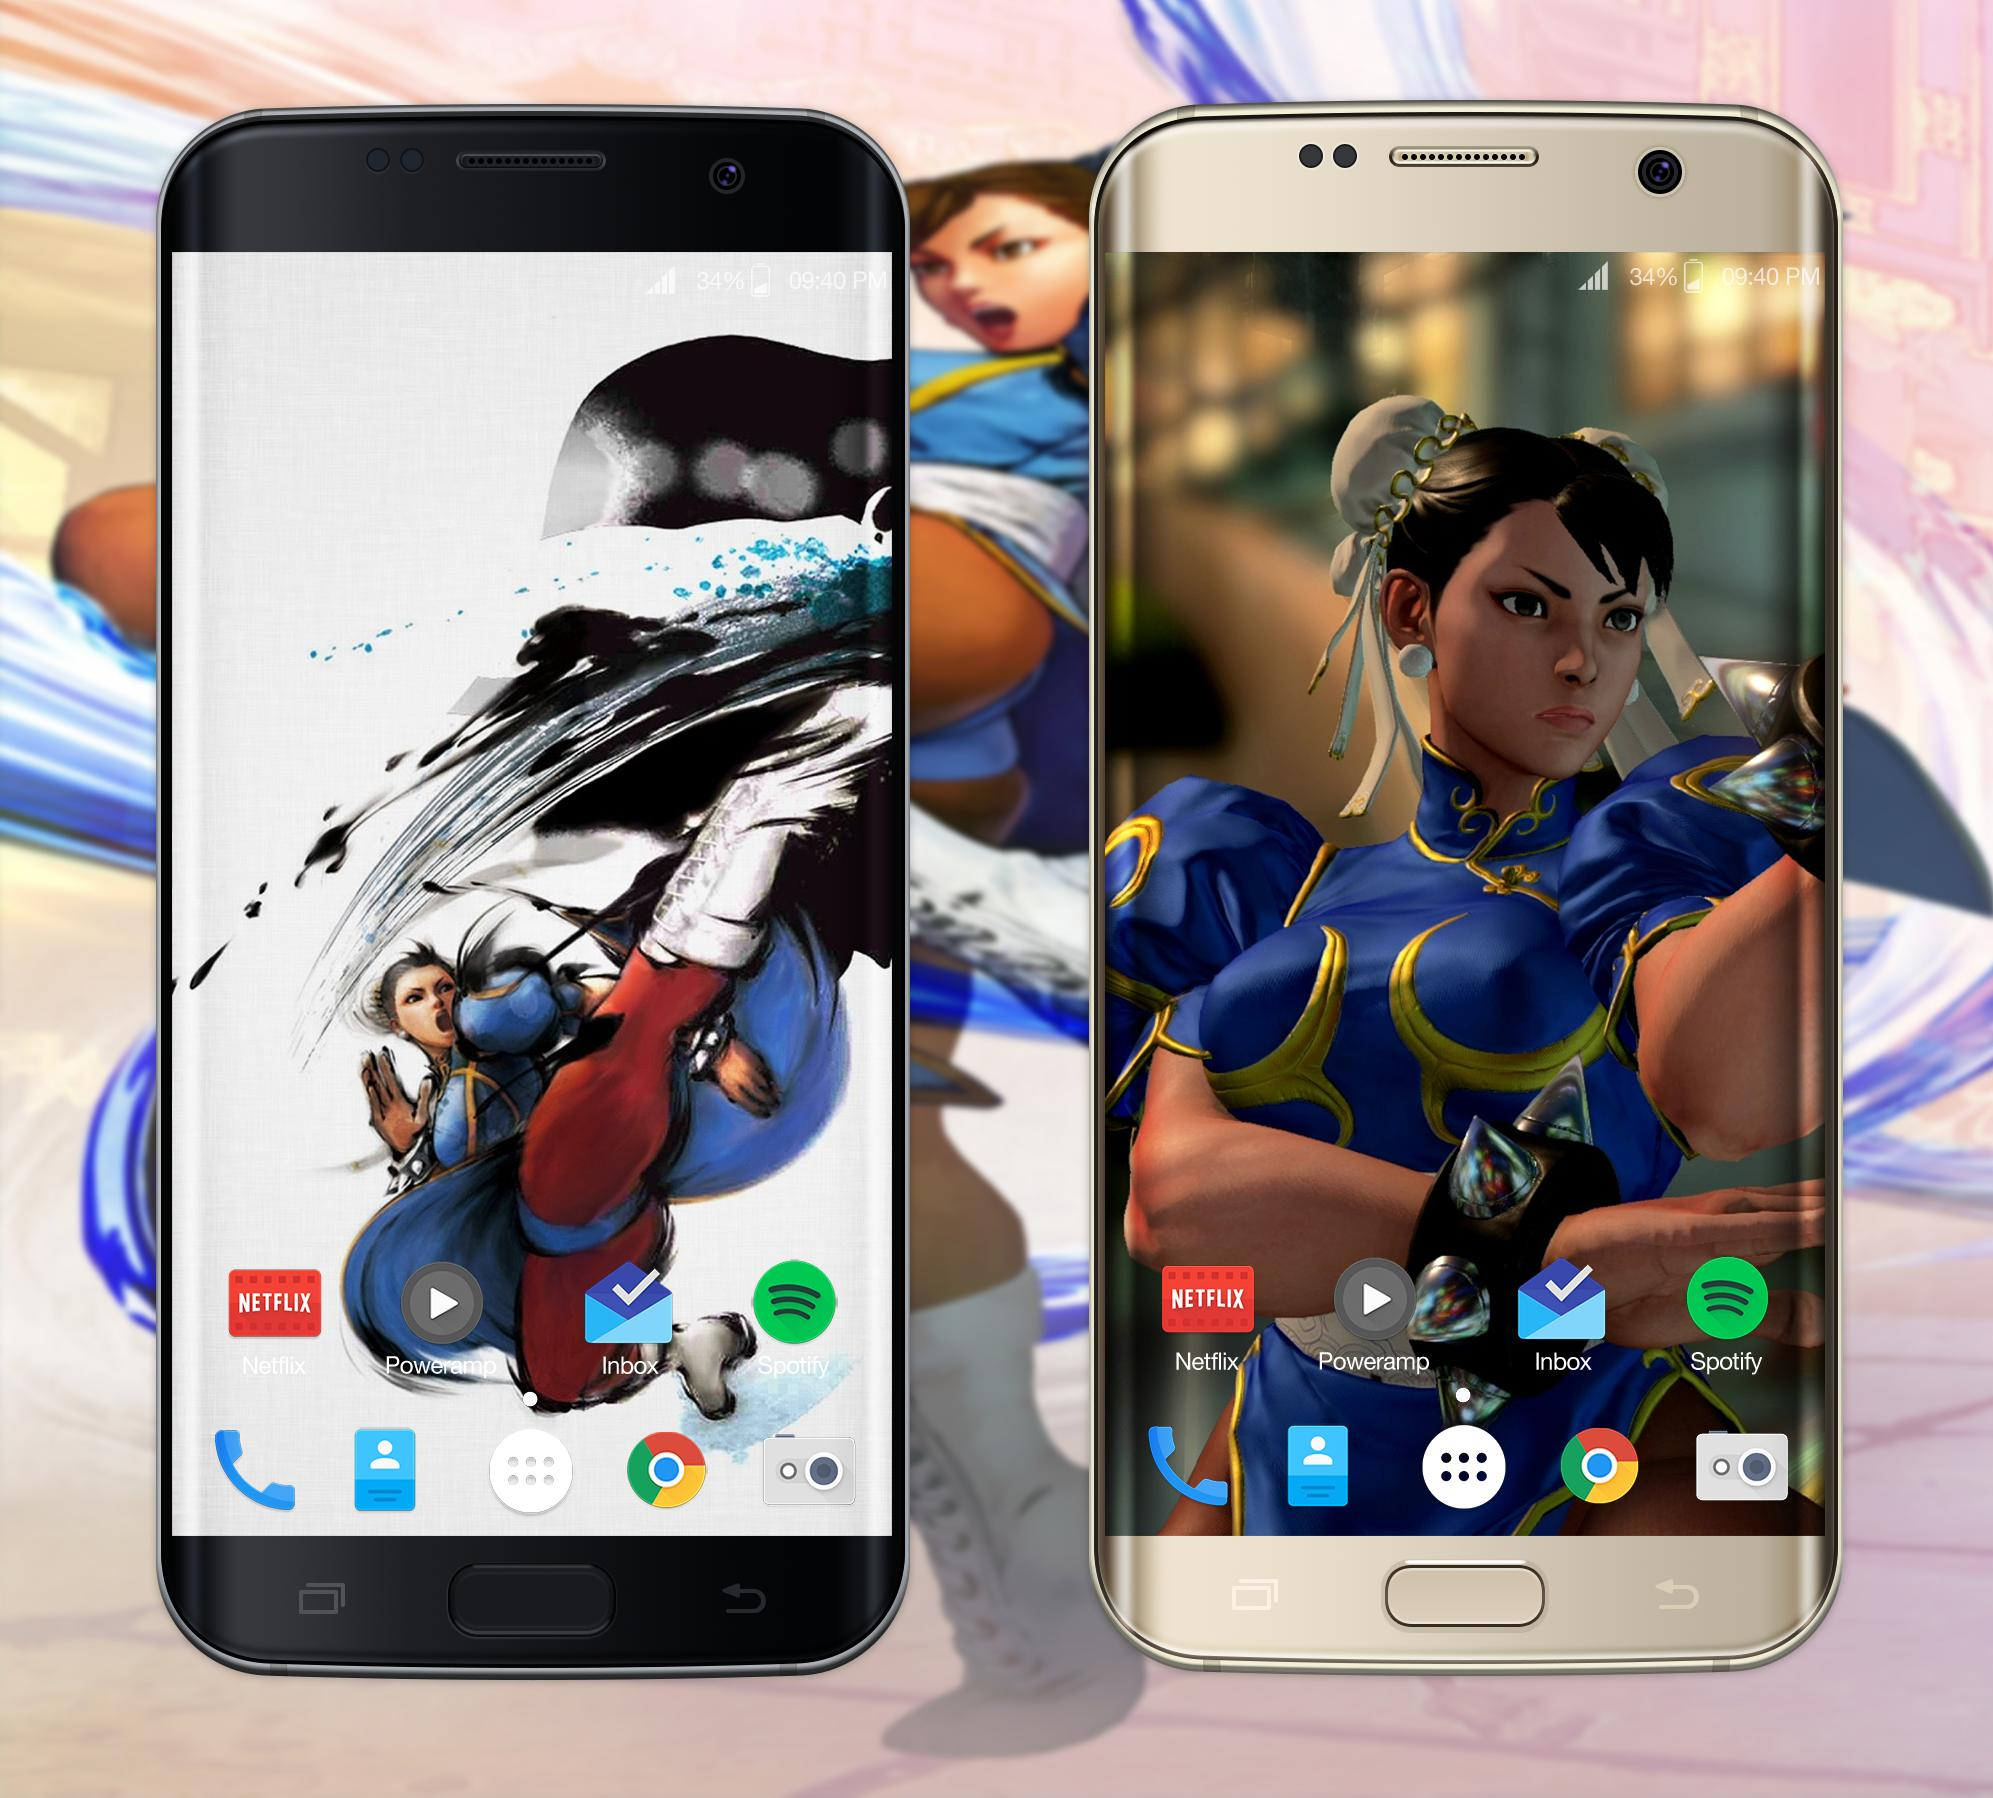 Chun Li Wallpaper Hd For Android Apk Download